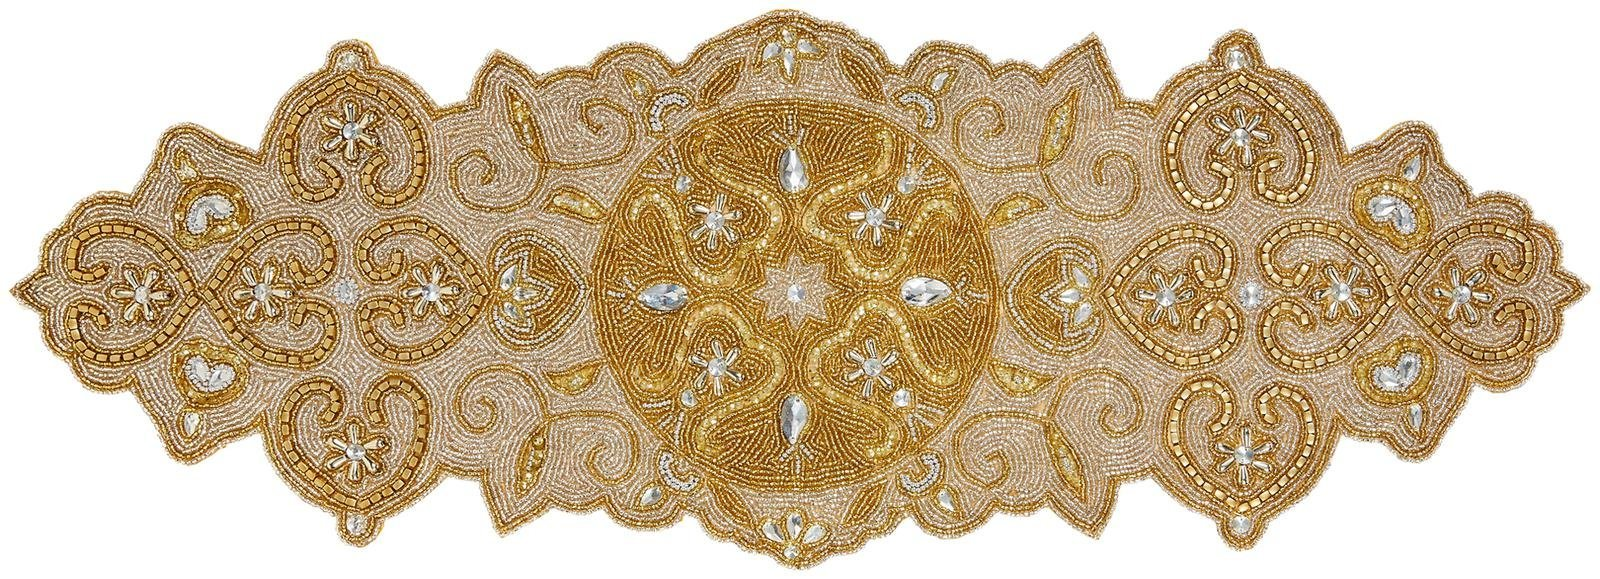 Two's Company Hand-Beaded Table Runner - 2 Designs